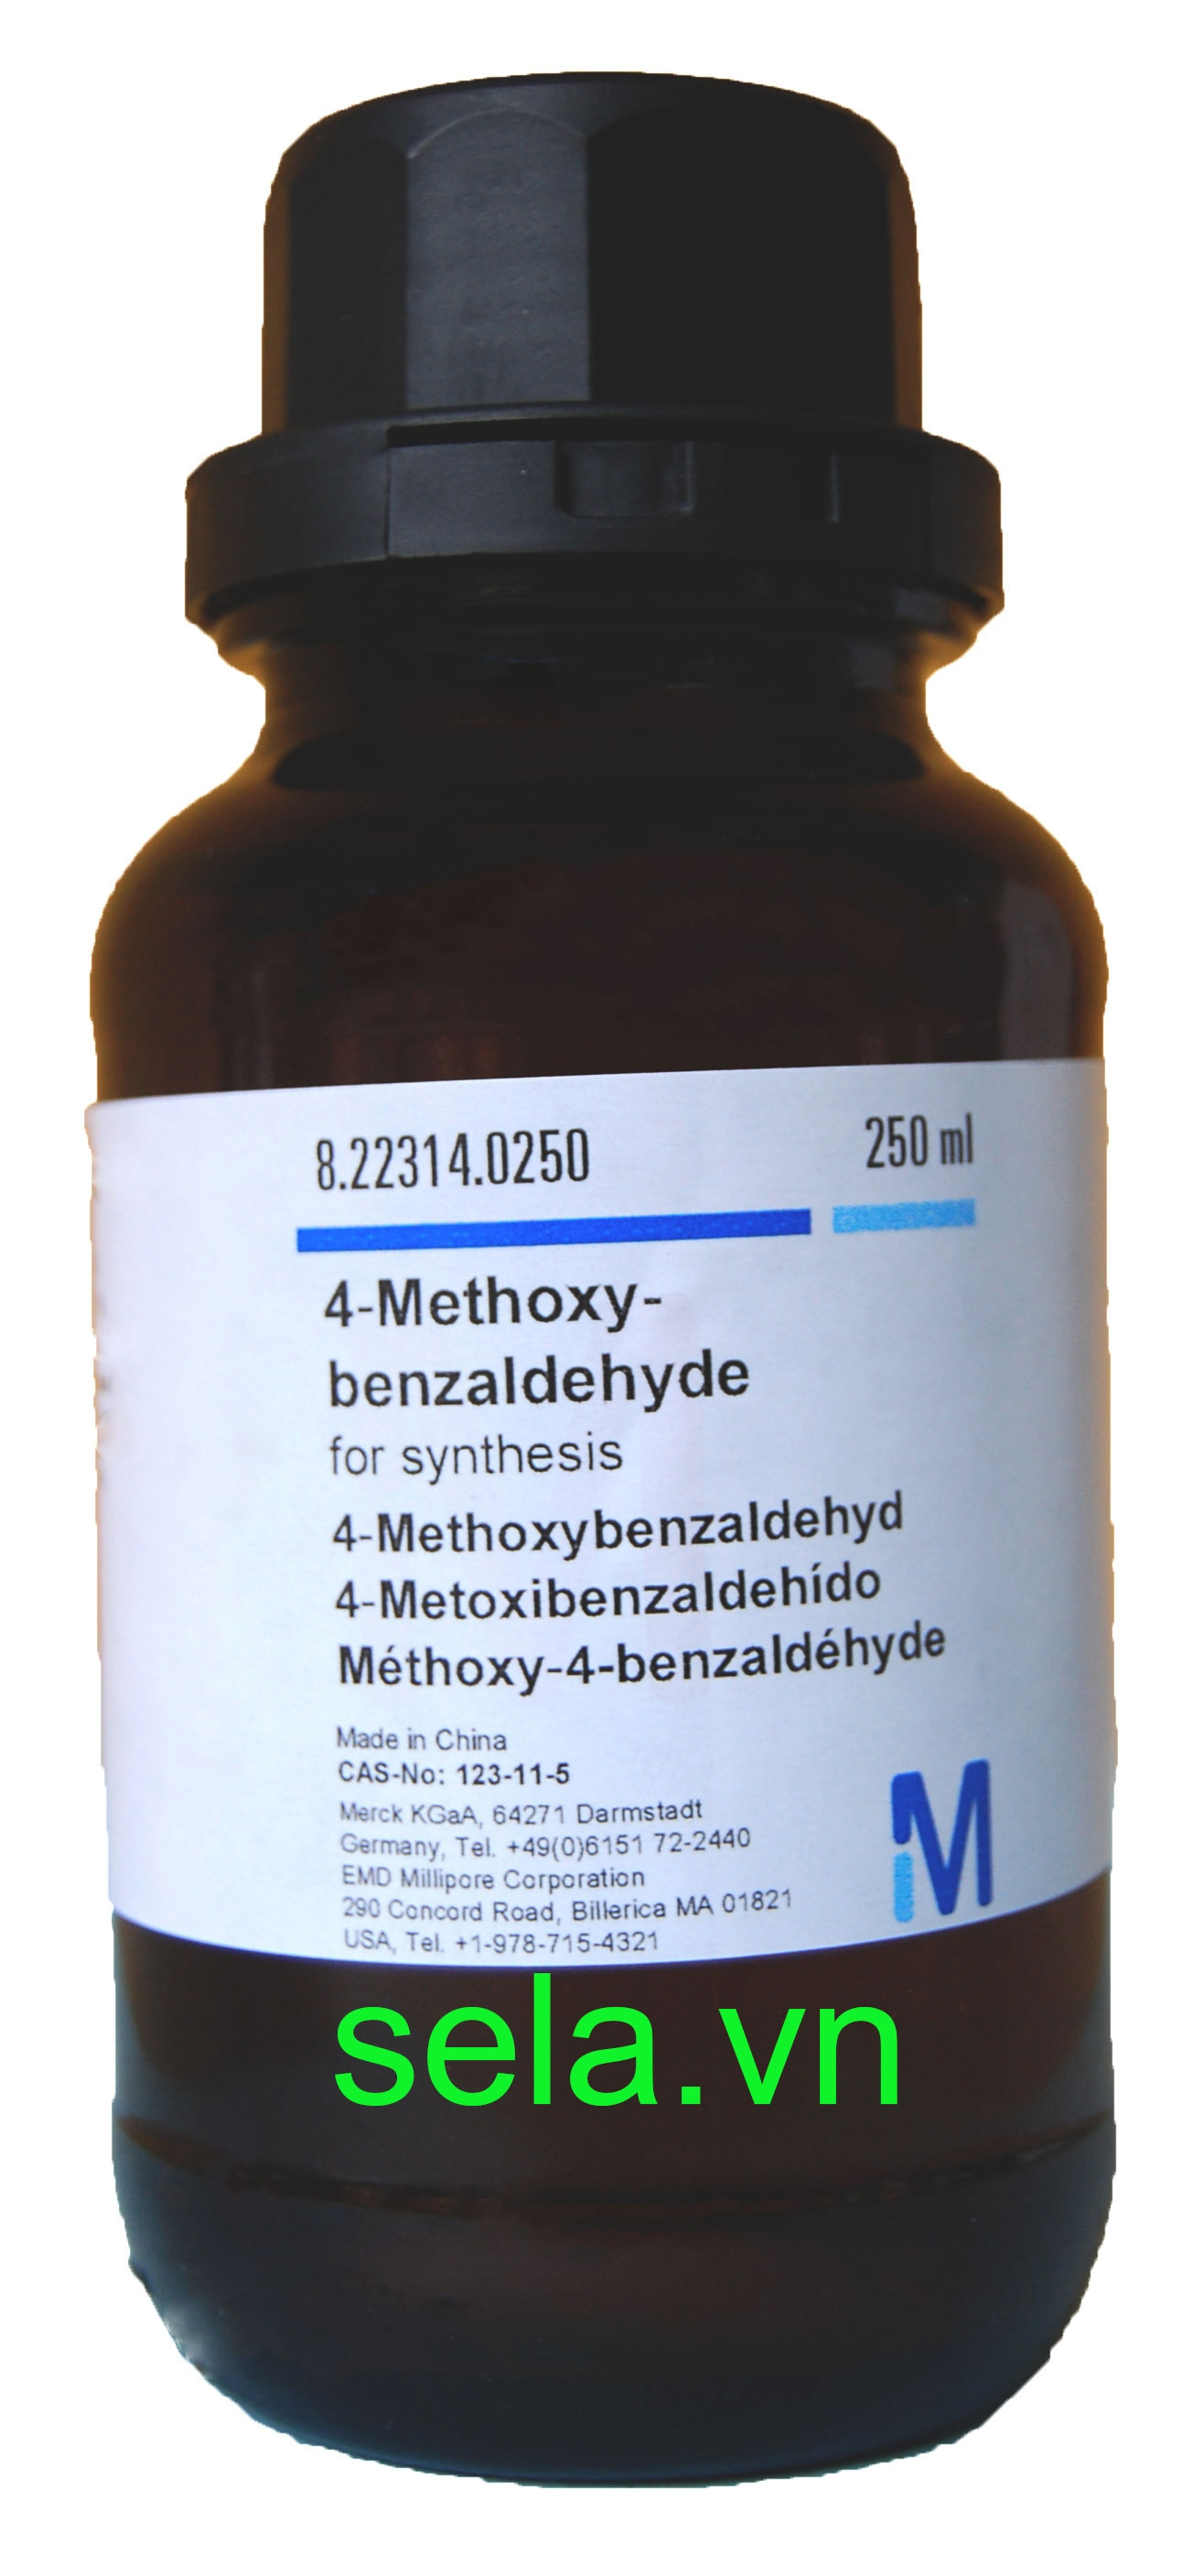 4-Methoxybenzaldehyde for synthesis